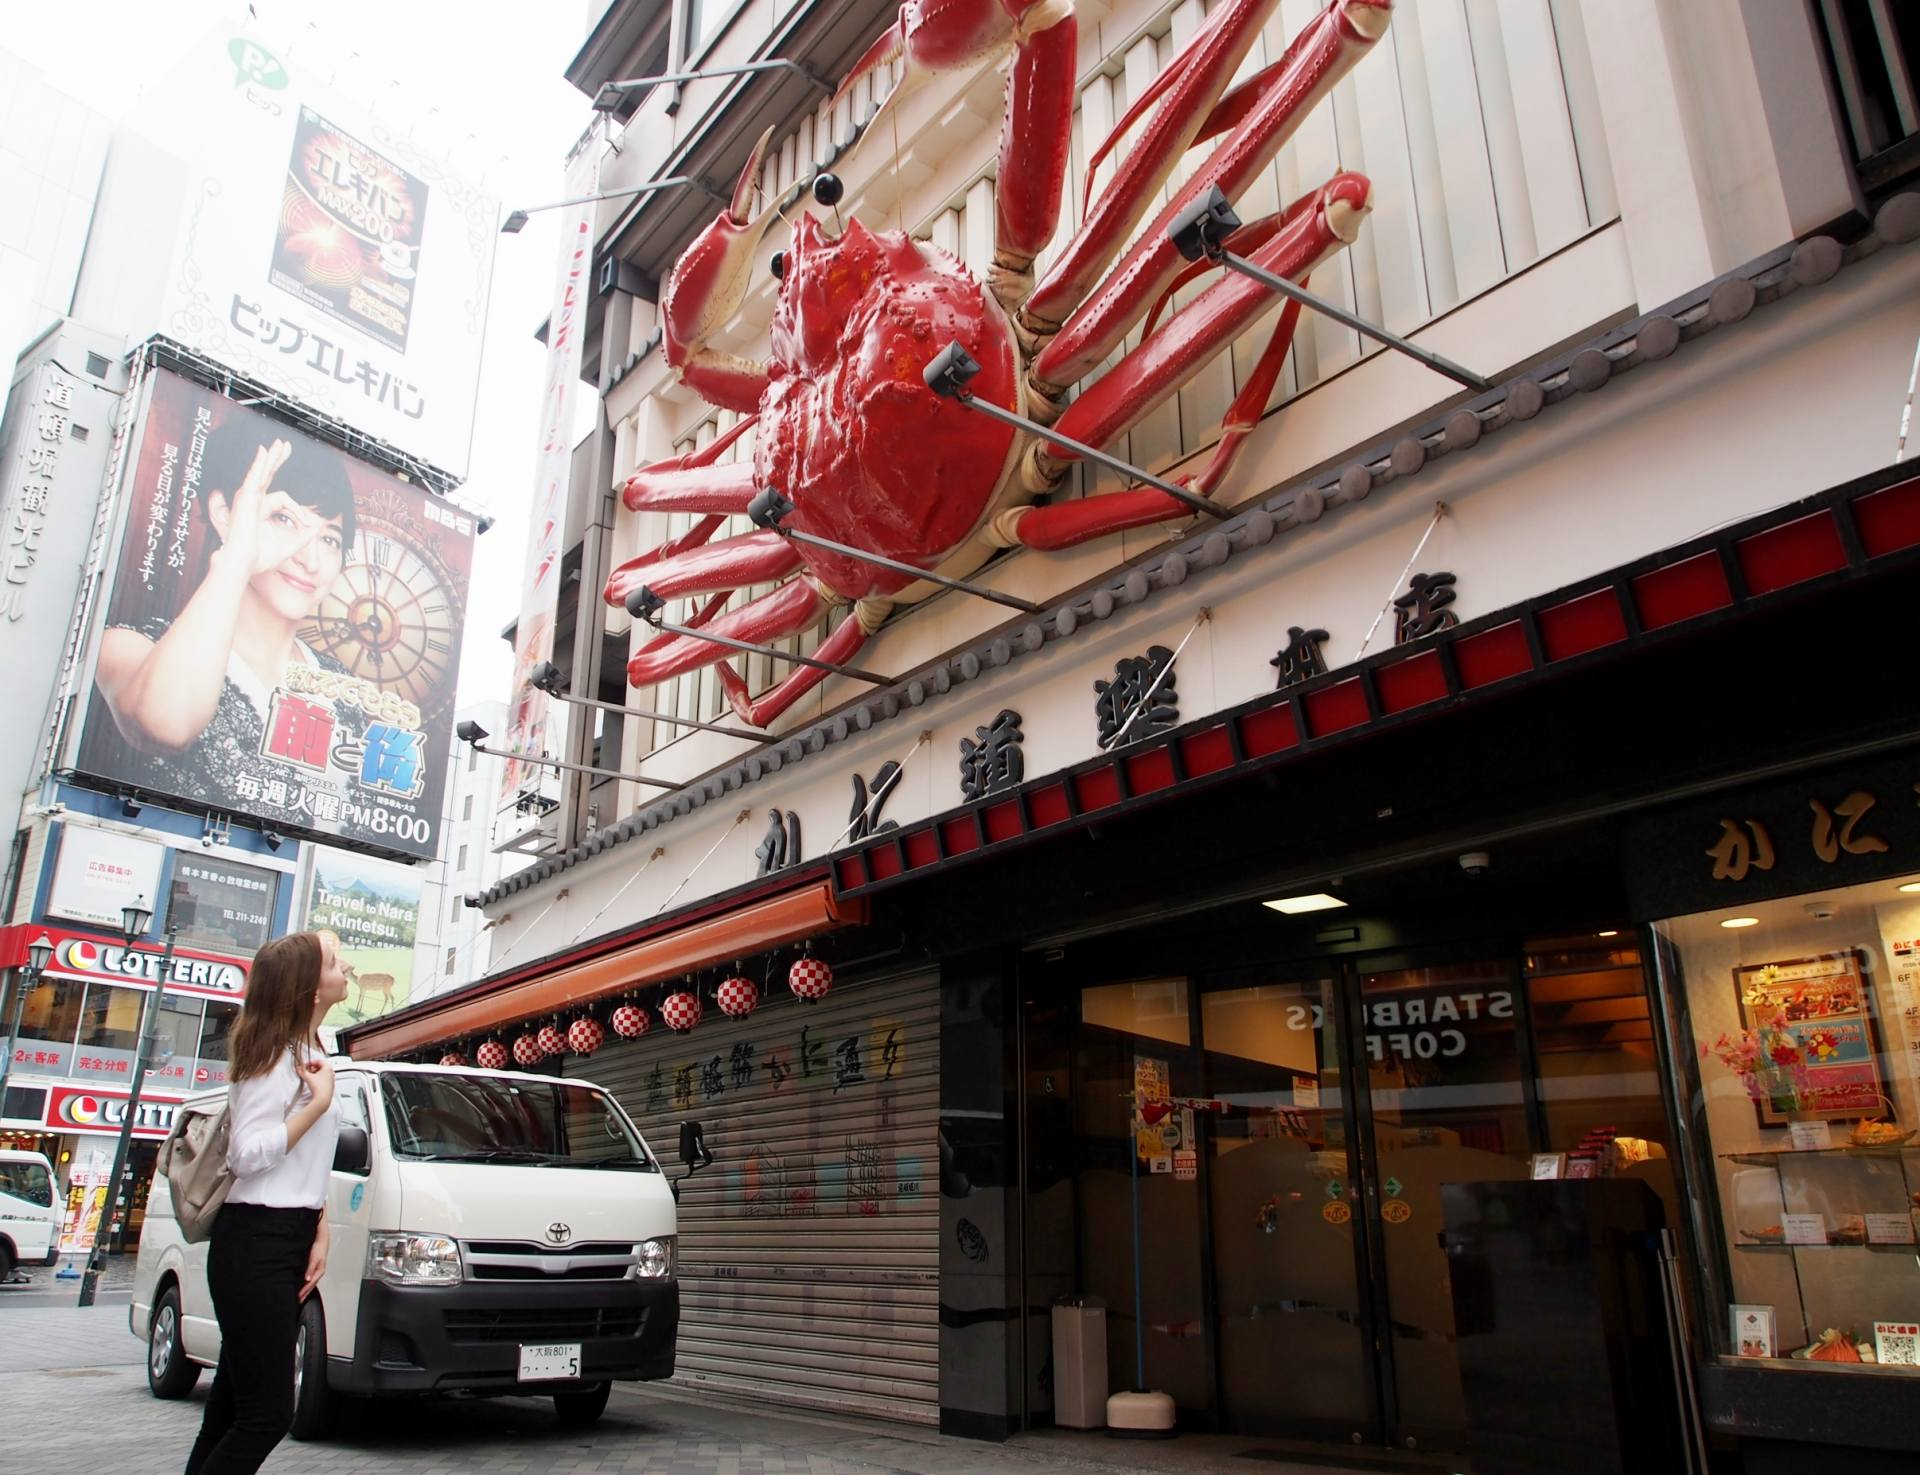 It's hard to decide where to eat in Osaka when all the restaurants look so good!